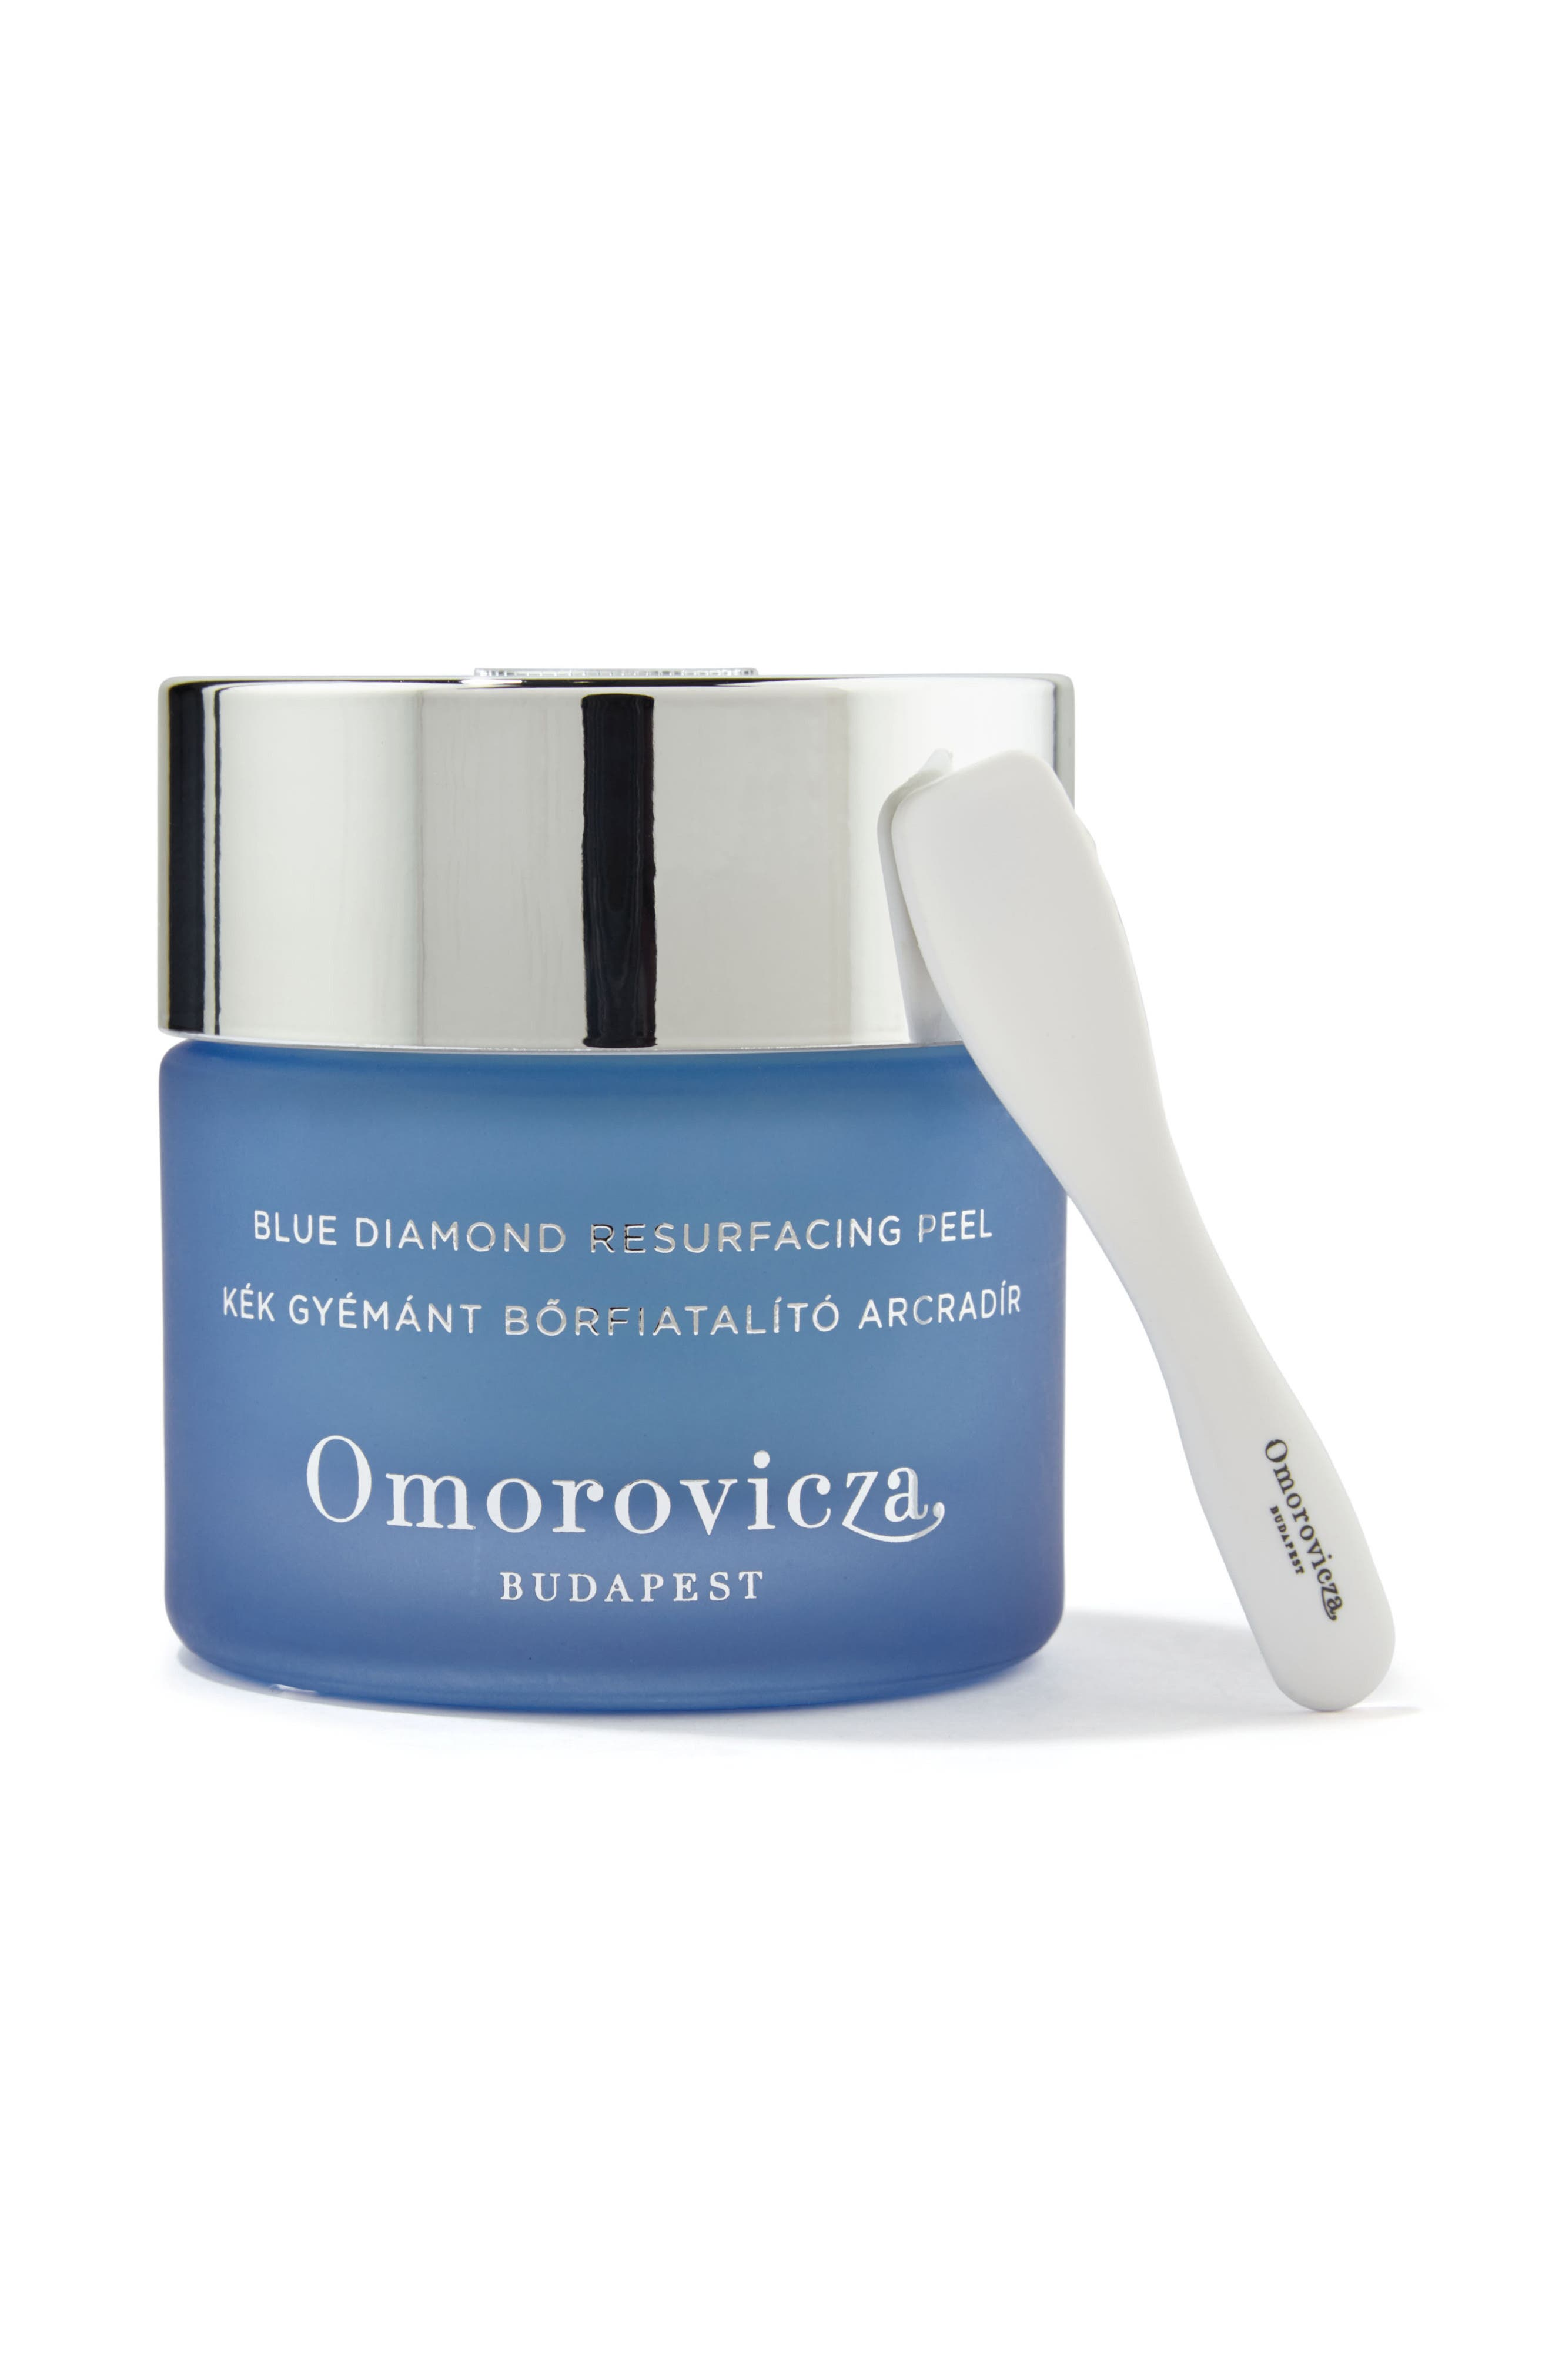 Omorovicza 'Blue Diamond' Resurfacing Peel